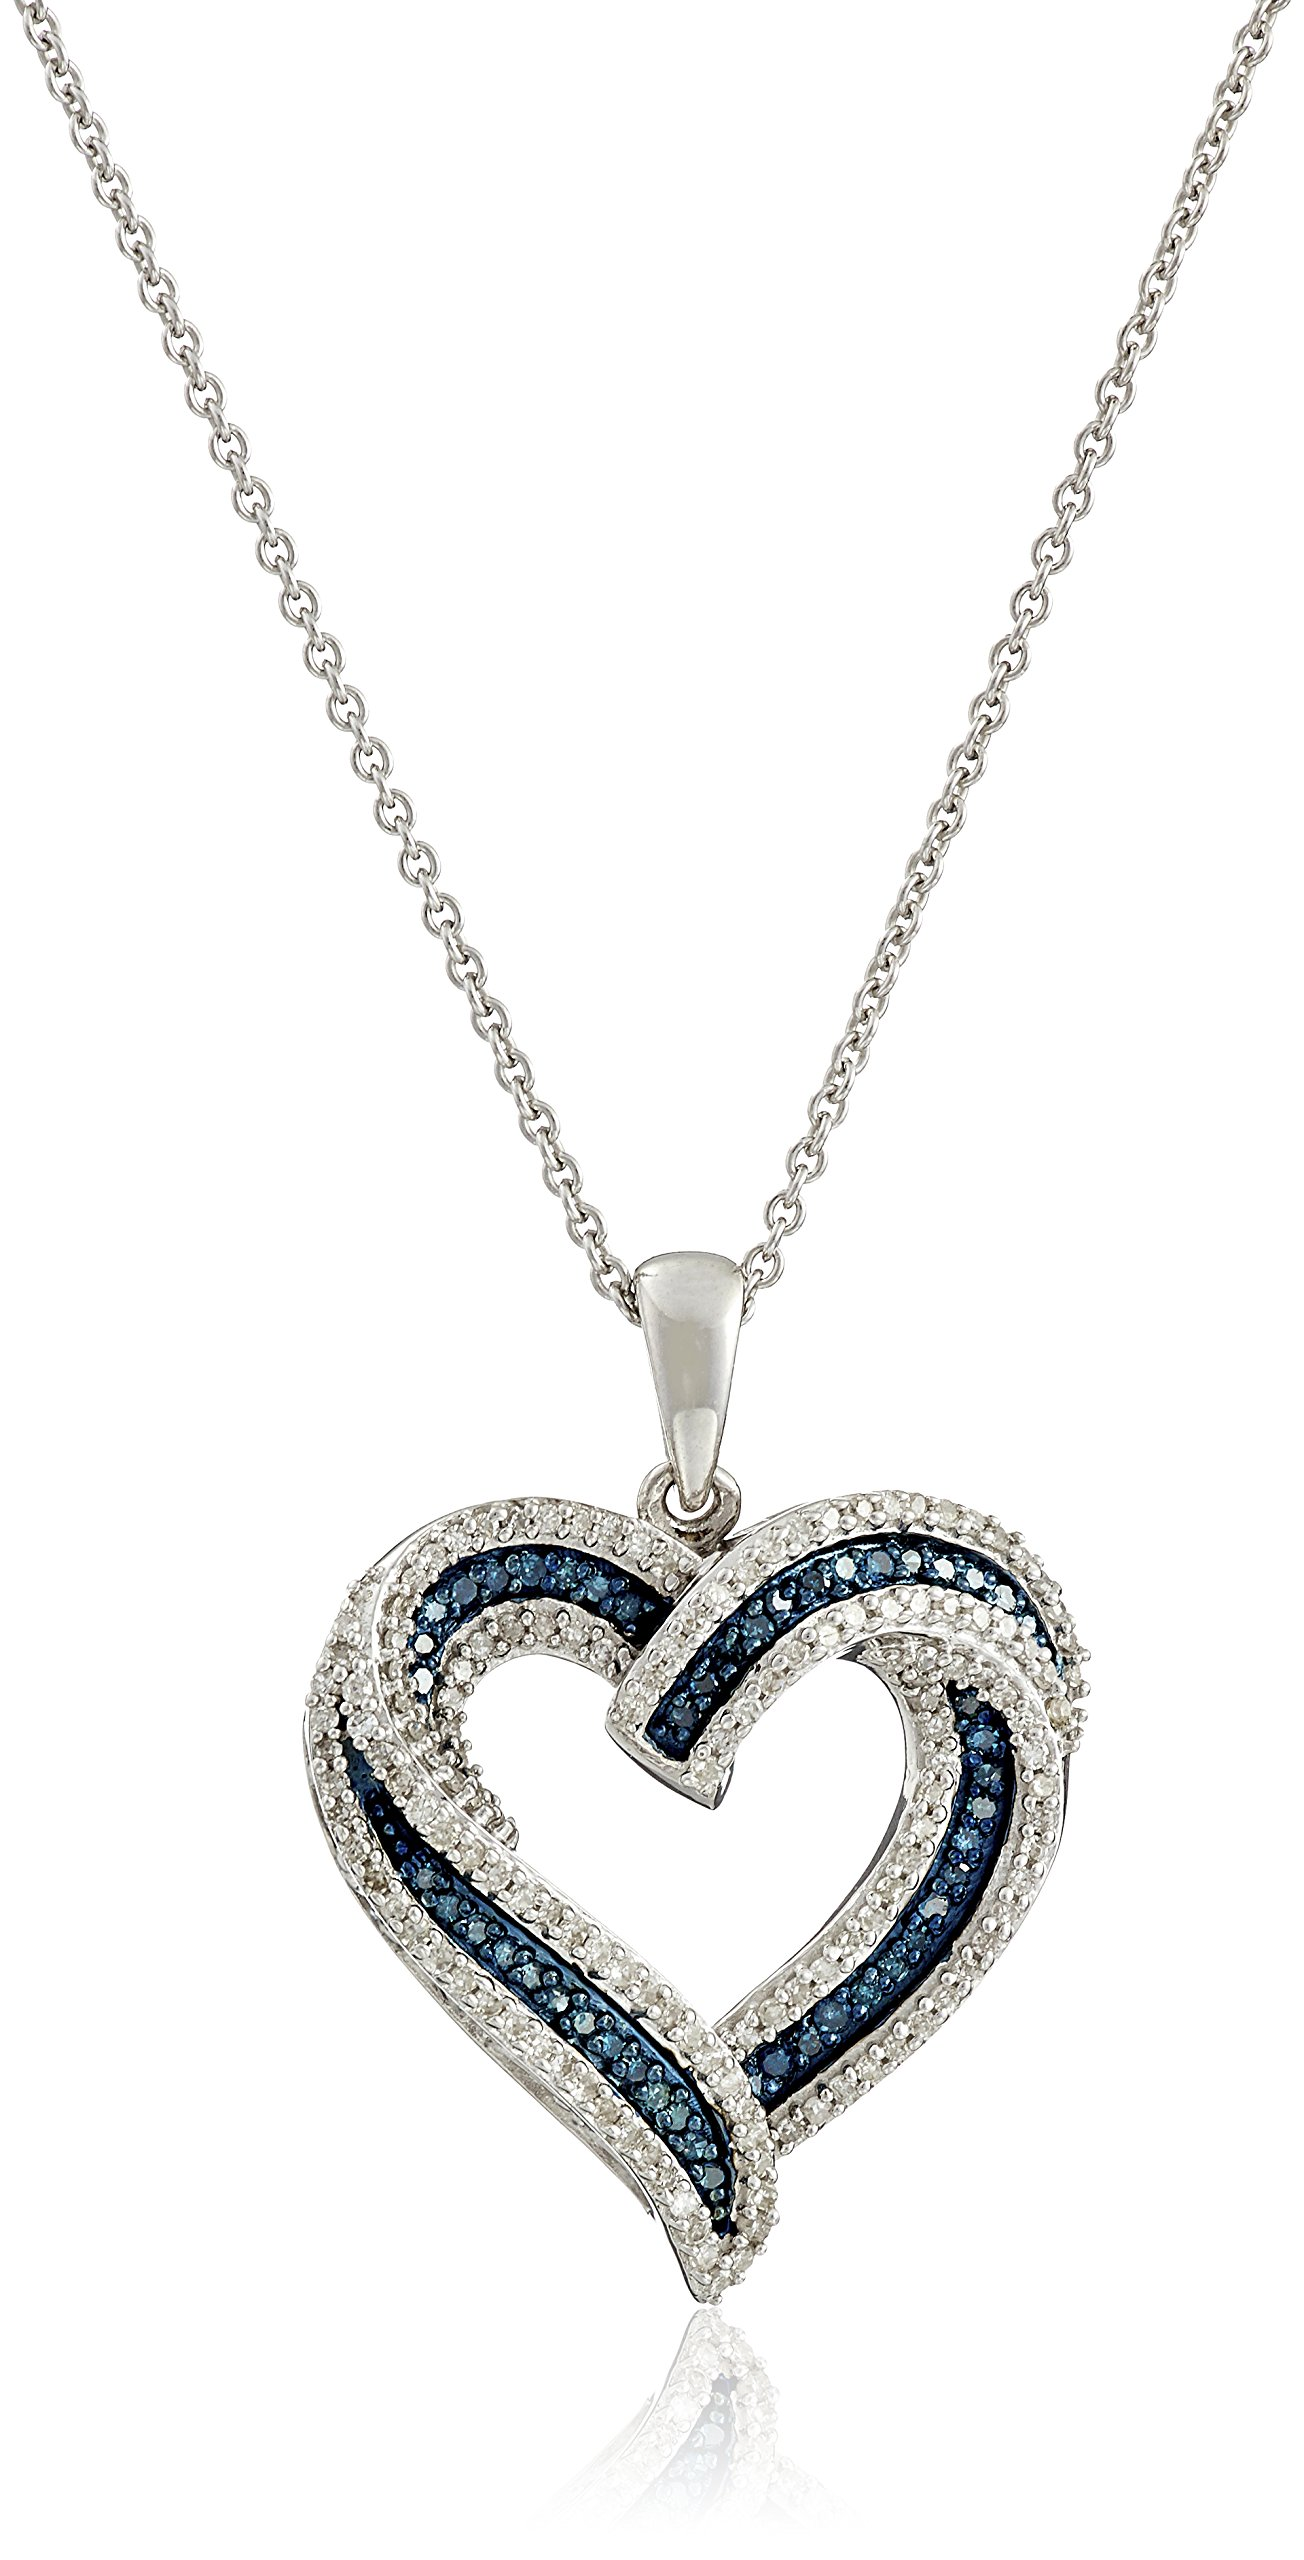 Sterling Silver Blue and White Diamond Heart Pendant Necklace (1/2 cttw), 18'' by Amazon Collection (Image #1)